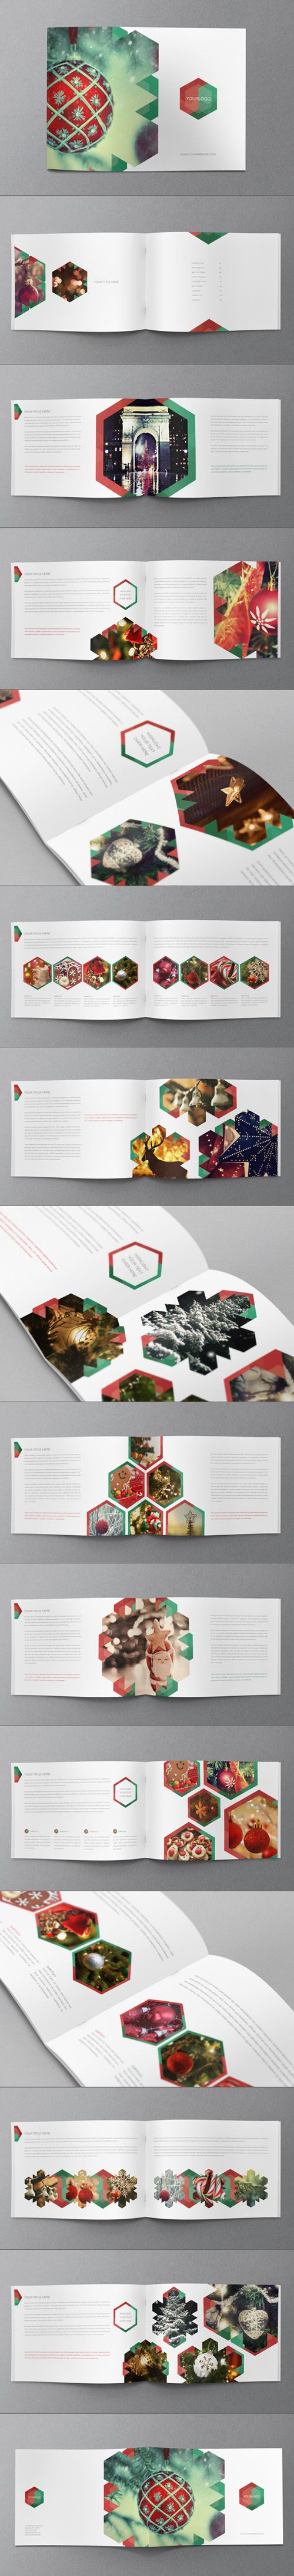 The breif articles of this design are very simplistic and modern. There is a lot of negative space, allowing the eye to be focused on the body copy. In addition, the shapes provide some color and interest to the page. Very simple yet classy.